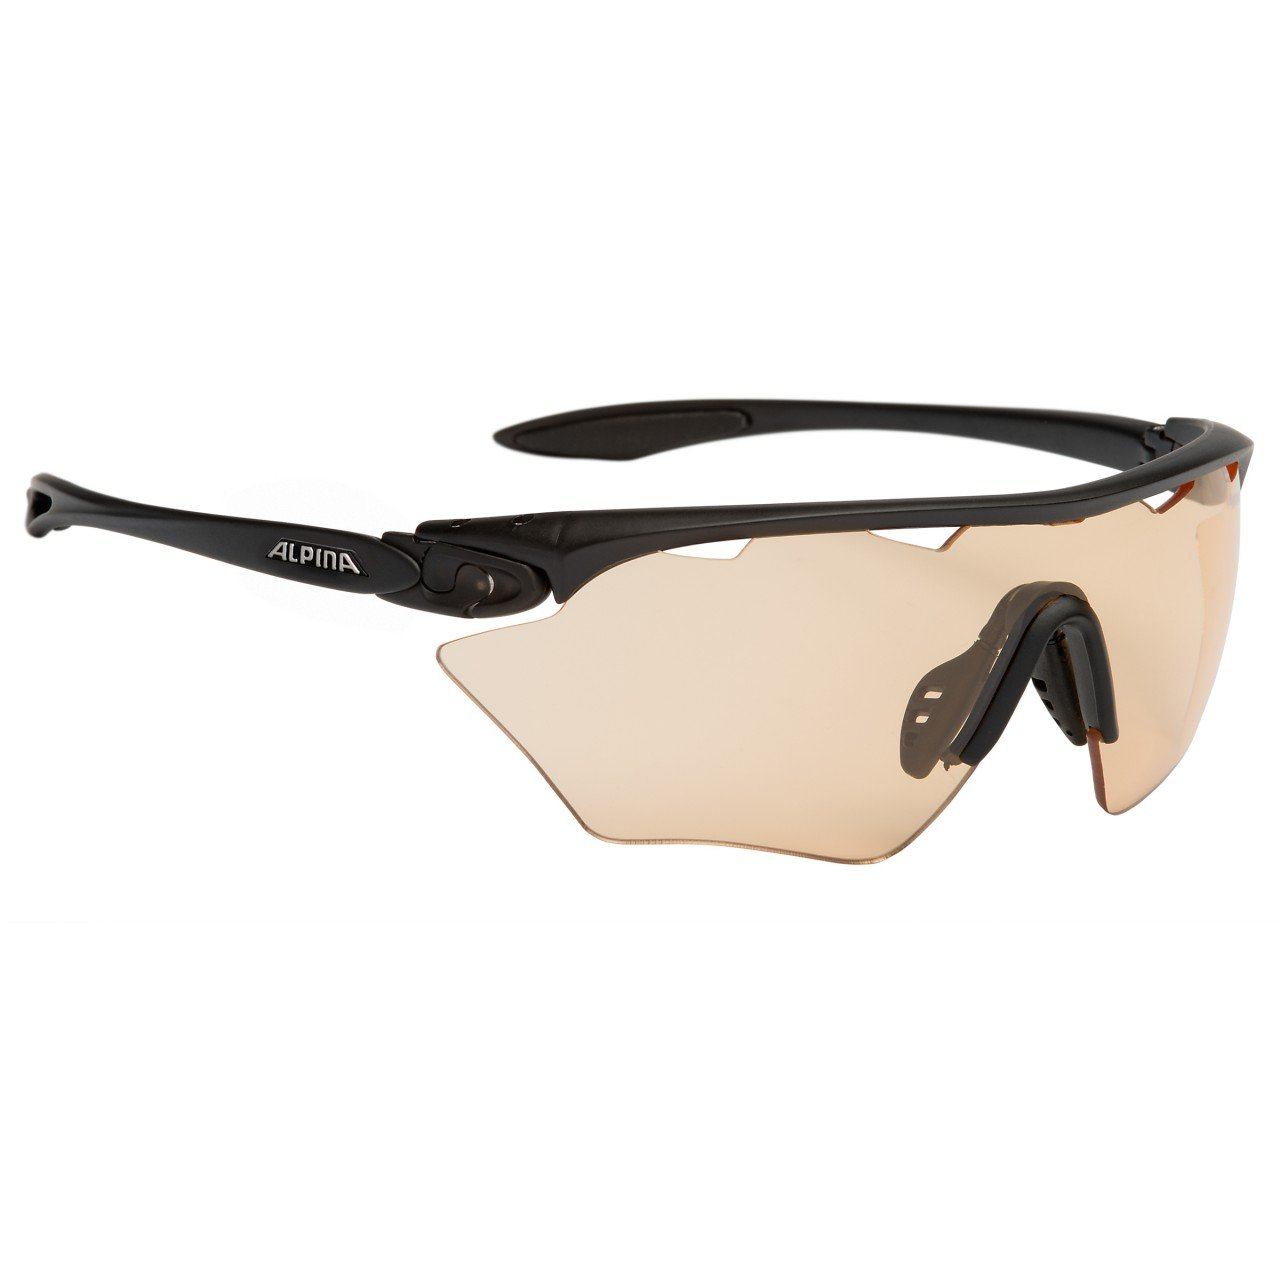 Alpina Twist Four Shield VL + unisex sports sunglasses One Size A8454131